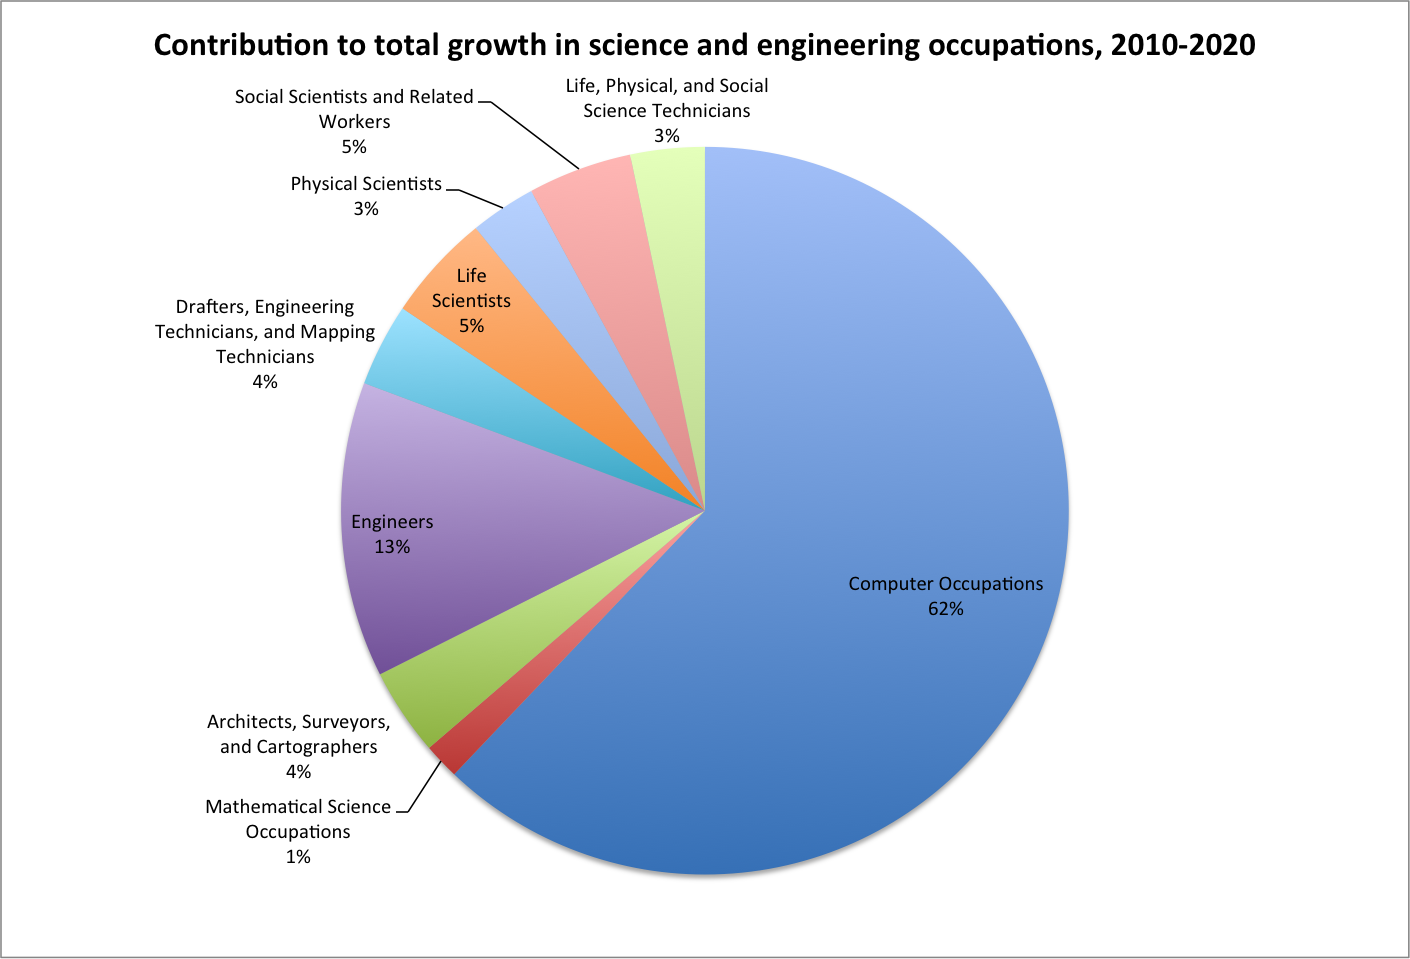 Contribution to total growth in science and engineering occupations, 2010-2020 [derived from http://www.bls.gov/opub/mlr/2012/01/art5full.pdf, Appendix, Table 1].